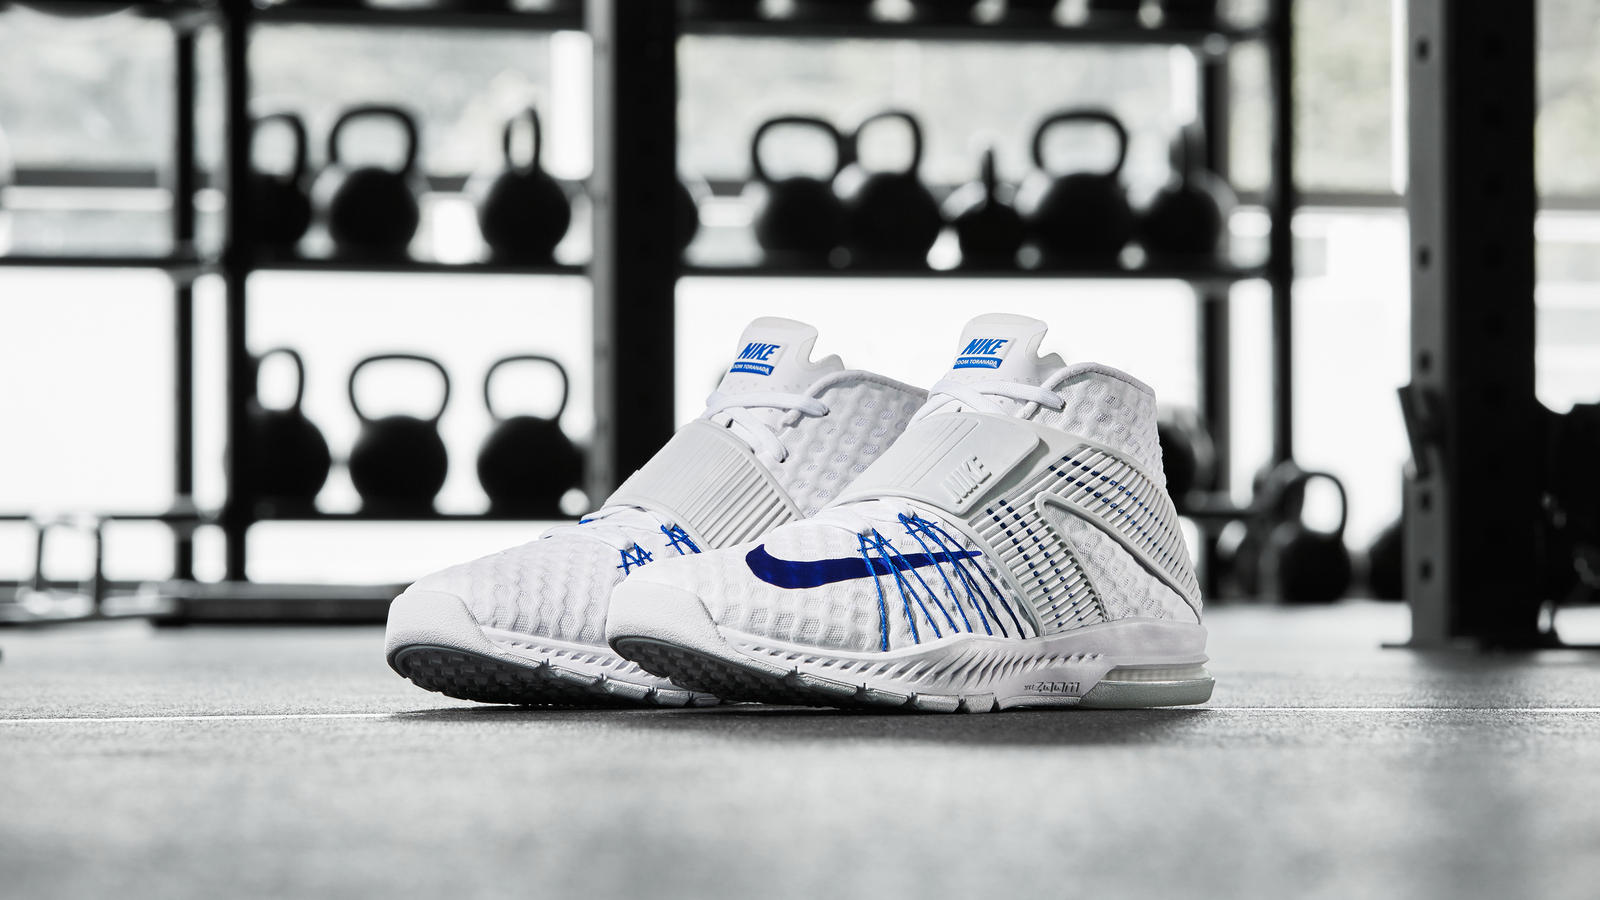 Nike Zoom Train Toranada Gronk